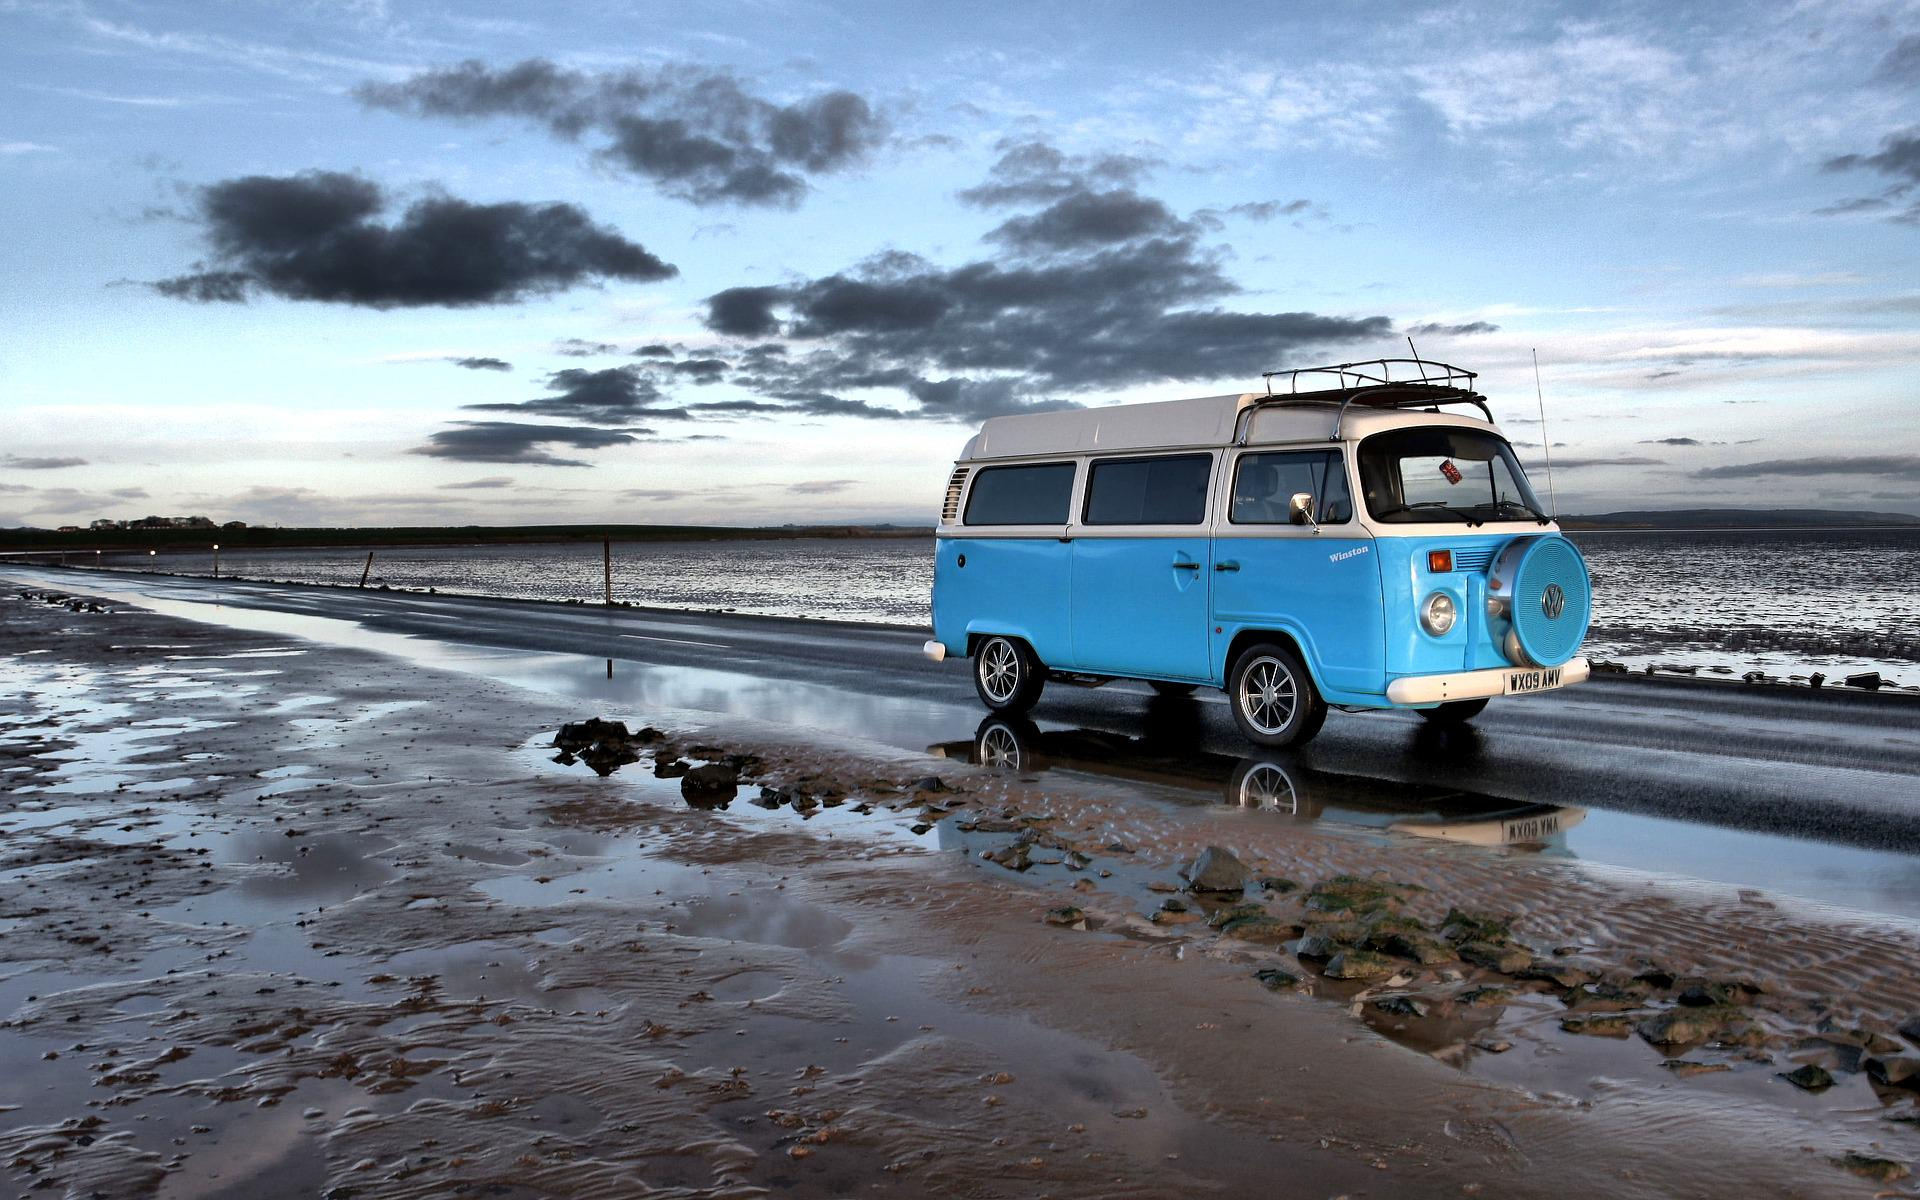 UK Motorhome Hire - Hire a motorhome in the UK and Europe